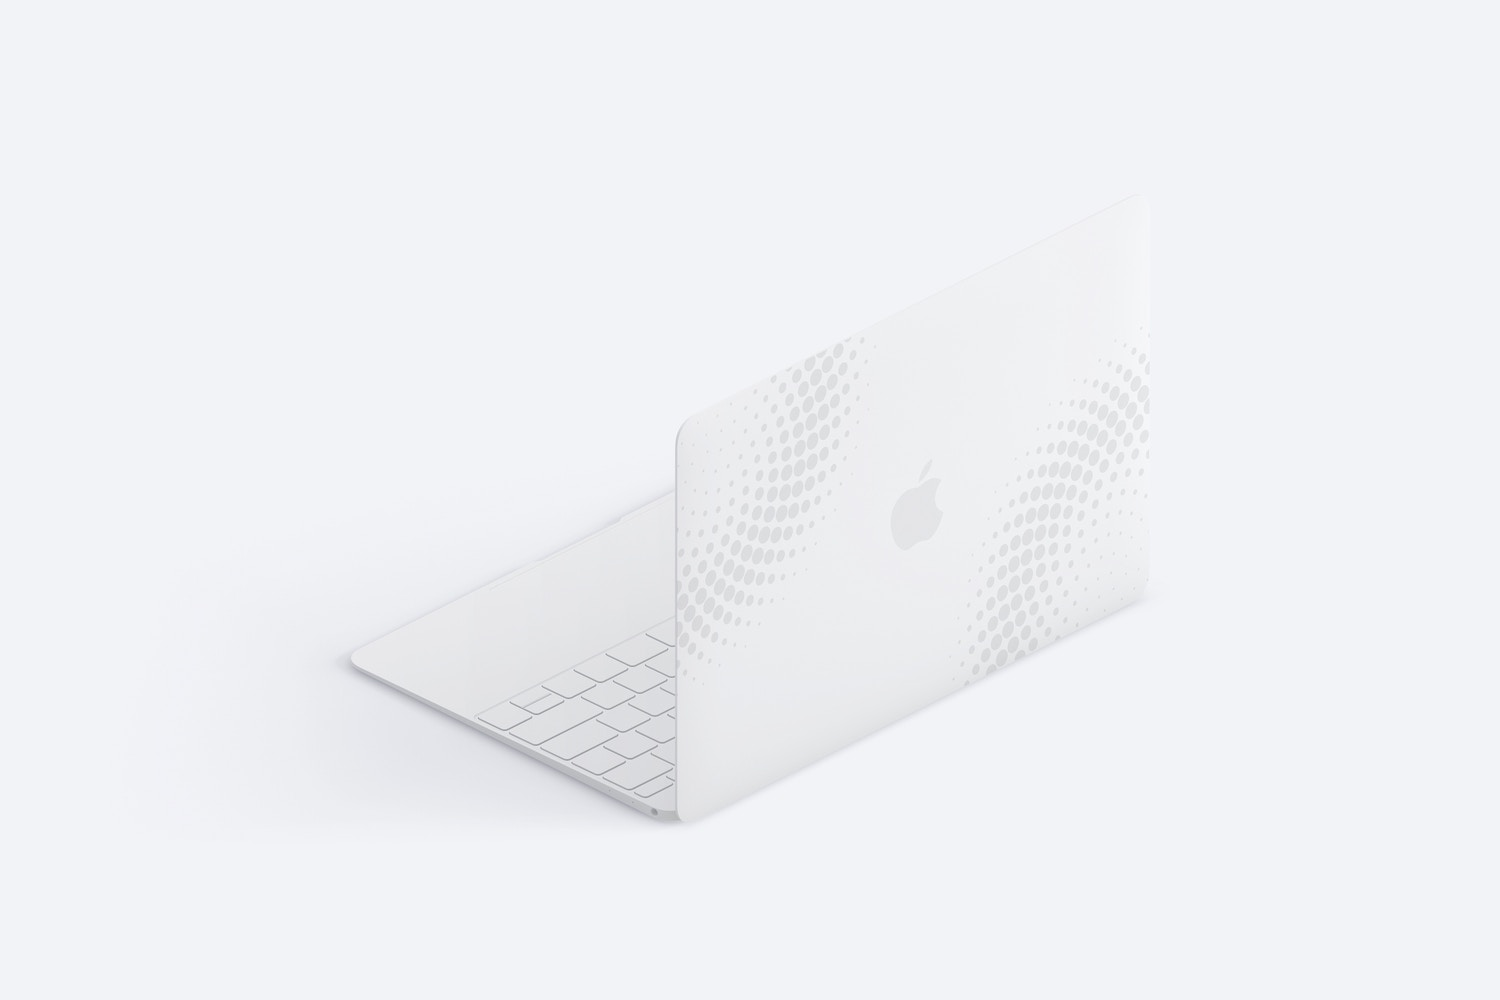 Clay MacBook Mockup, Isometric Back Right View (1) by Original Mockups on Original Mockups